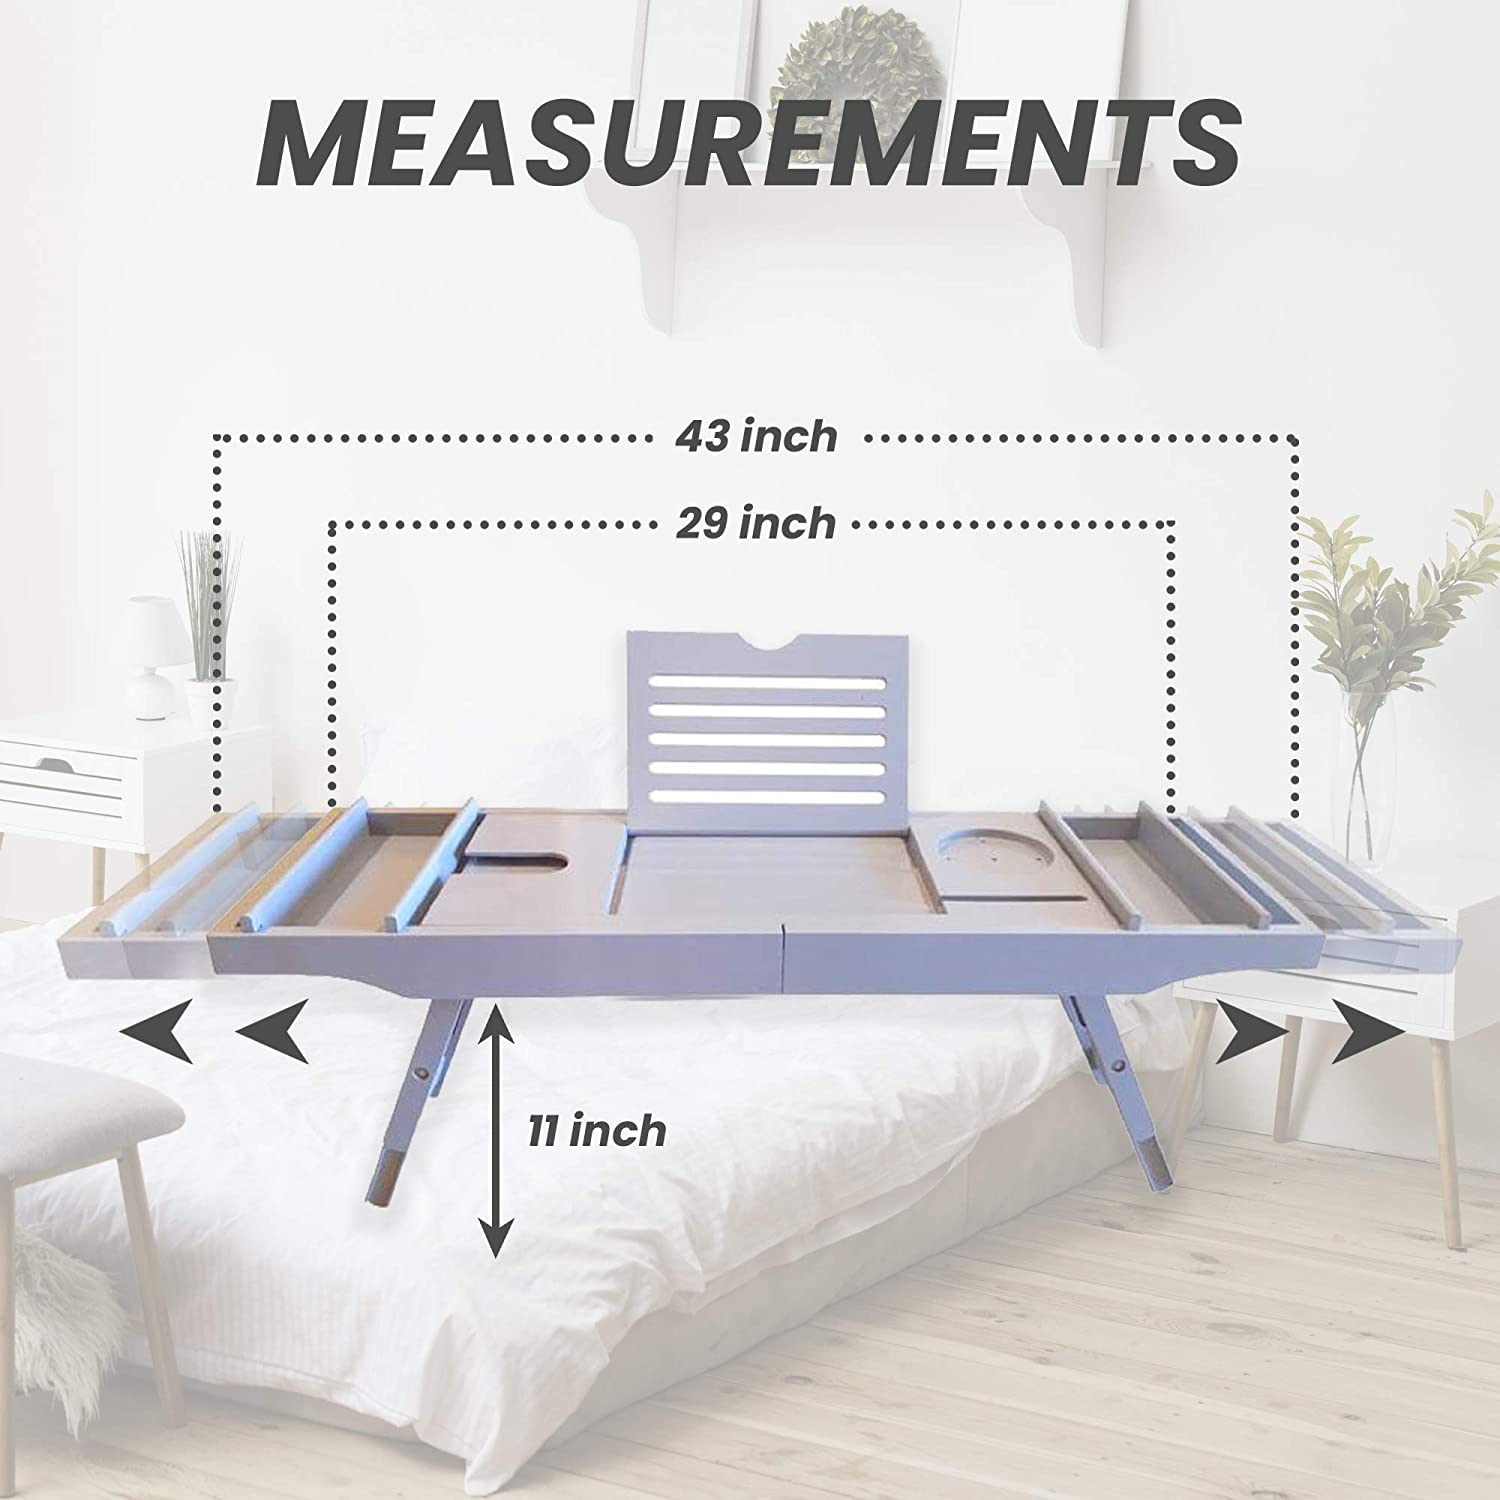 Luxury Bamboo Bathtub Caddy and Bed Tray with Foldable Legs. This Premium Expandable Bath Tray Fits Most Baths and Includes 2 Removable Bathtub Accessories Trays: Kitchen & Dining